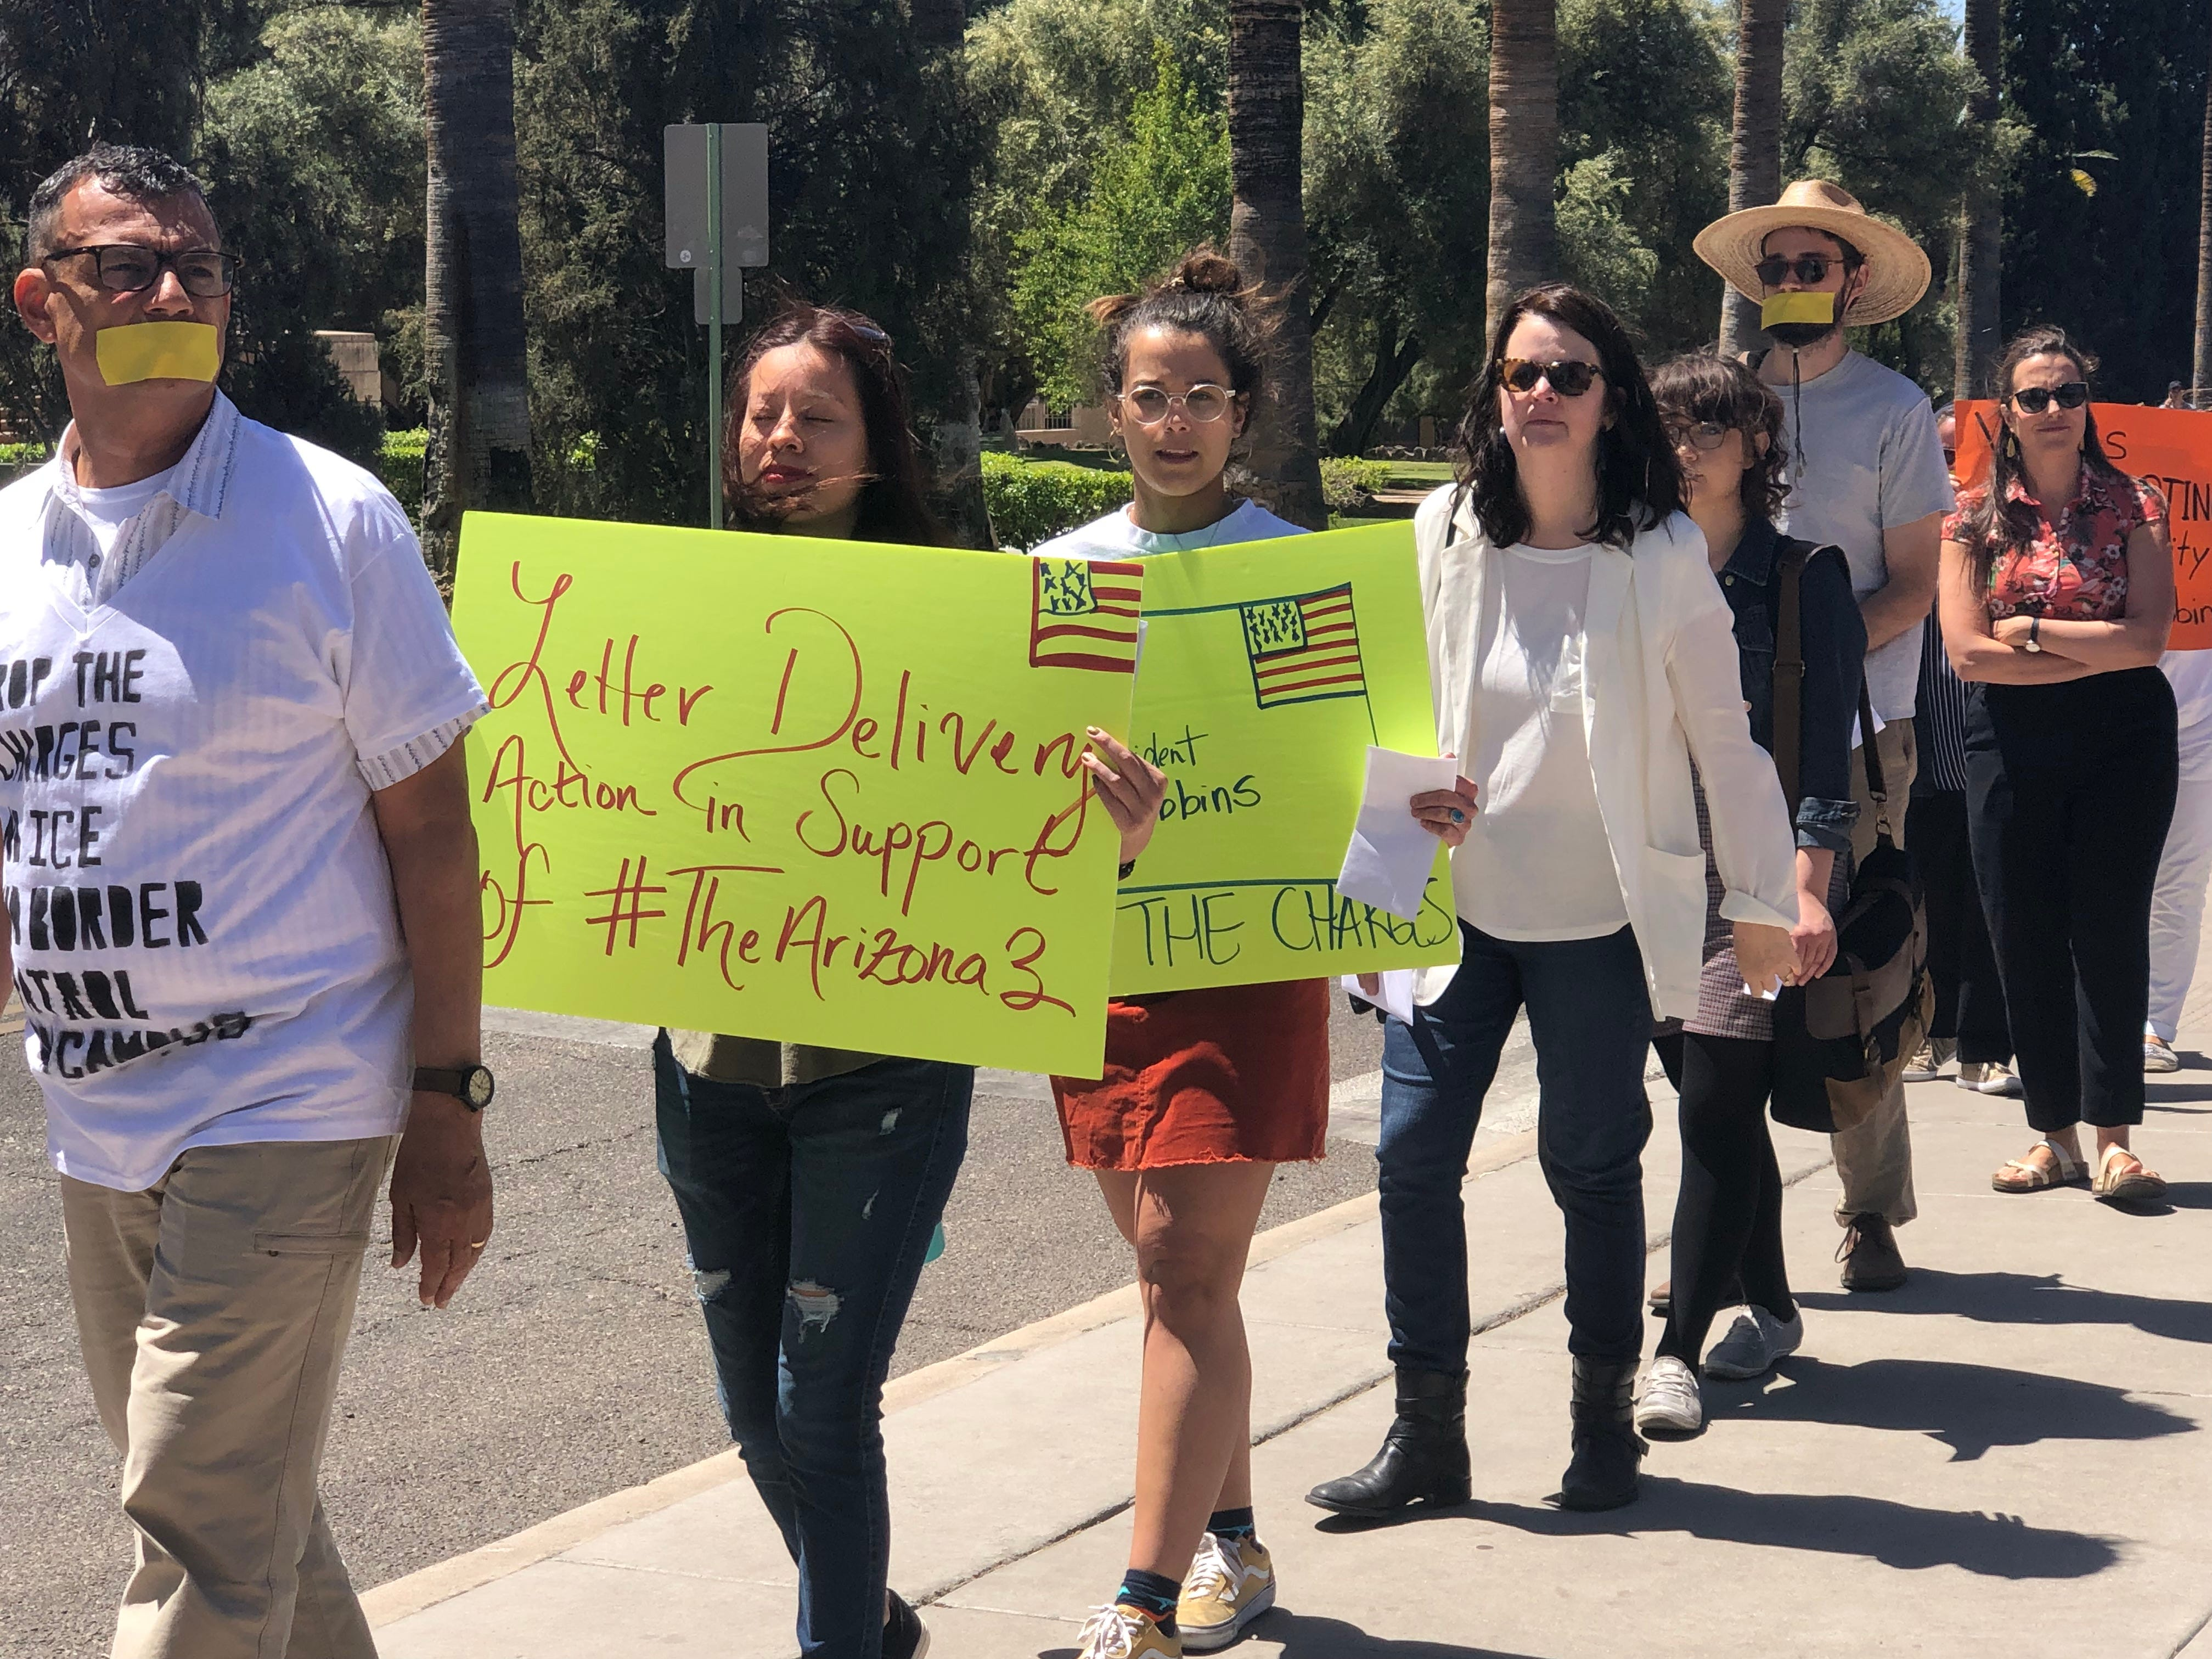 University of Arizona students and faculty protest the charges against three students, who protested a Border Patrol visit, on April 10, 2019.